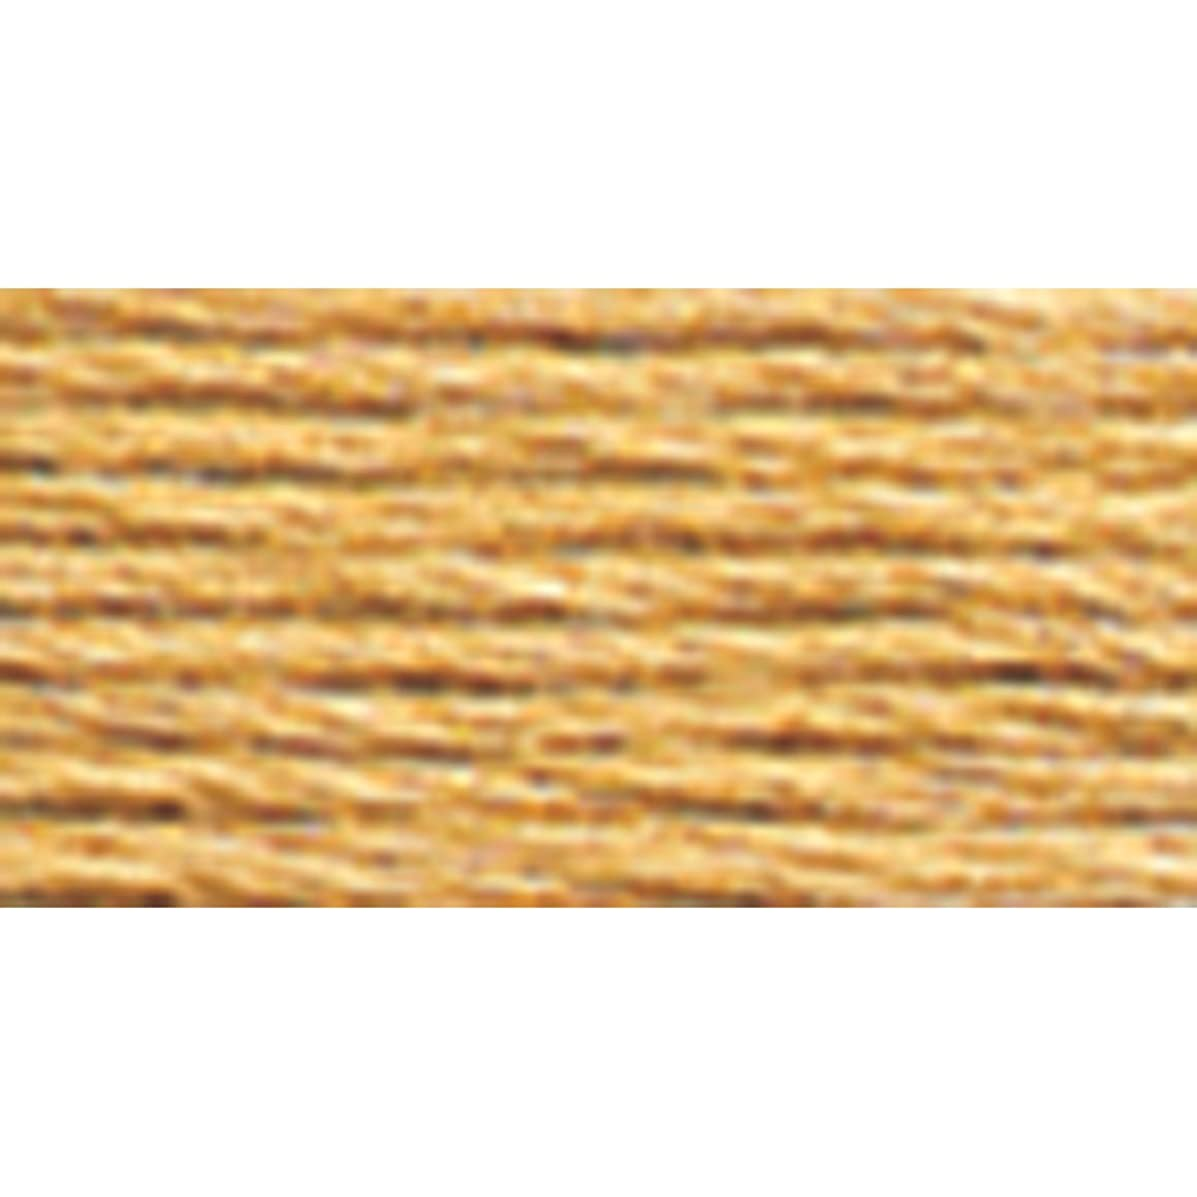 Dmc 6-Strand Embroidery Cotton 8.7yd-Light Tan